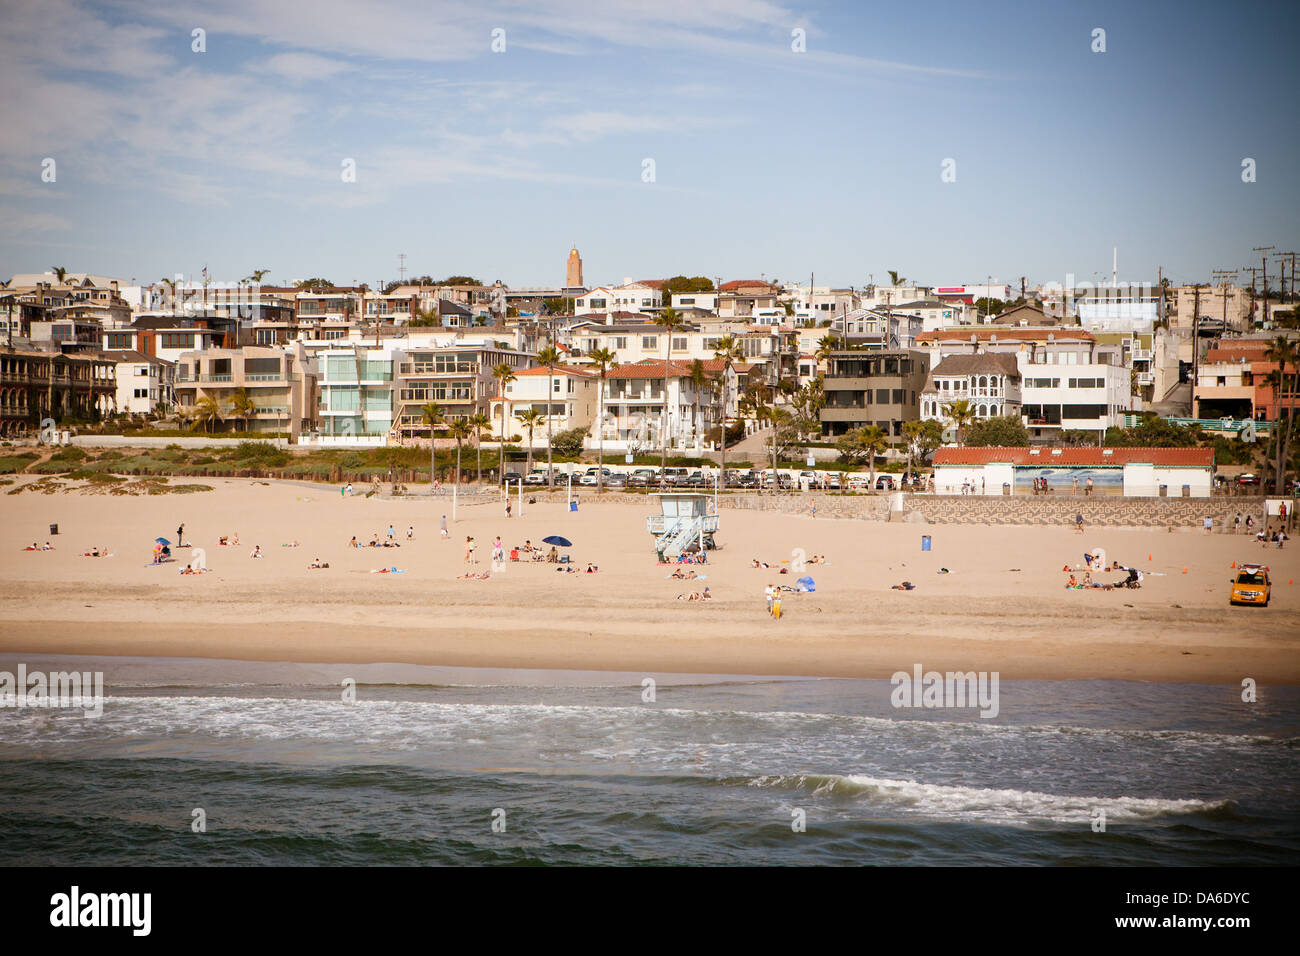 Manhattan Beach on a warm sunny day in Los Angeles, California, USA - Stock Image